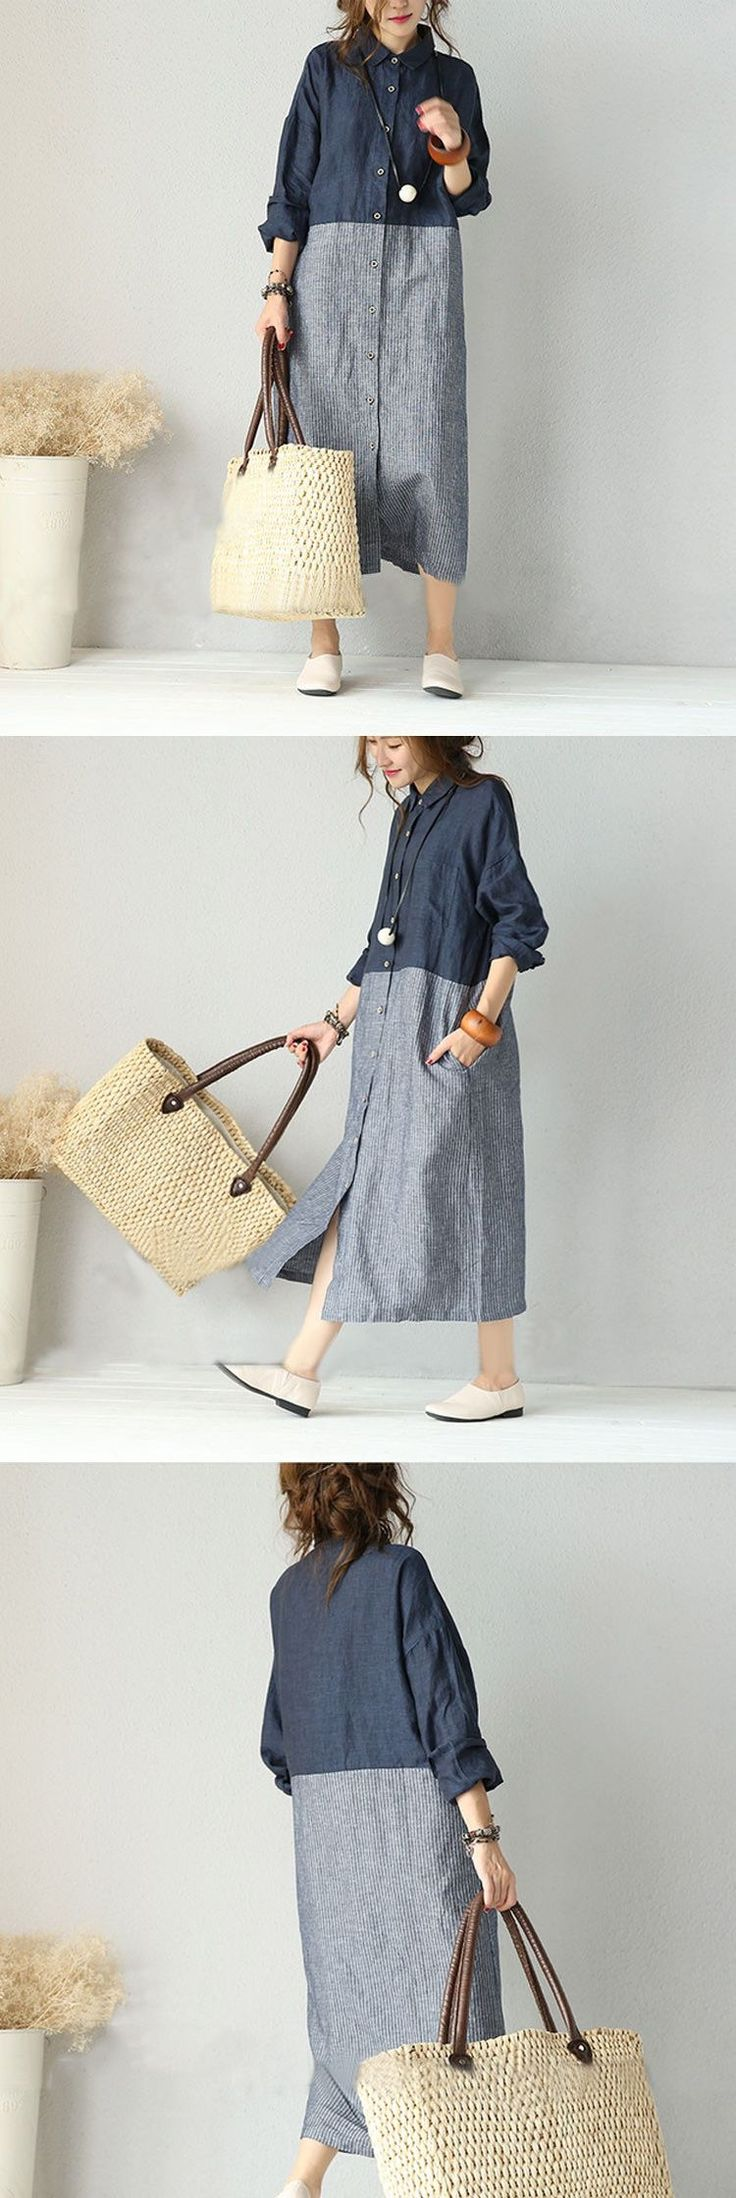 Fabric: Fabric has some stretch Season: Autumn, Spring, Winter Type: Shirt Dress Pattern Type: Plain Sleeve Length: Long Sleeve Color: Gray blue Dress Dresses Length: Maxi Style: Casual Silhouette: Dr